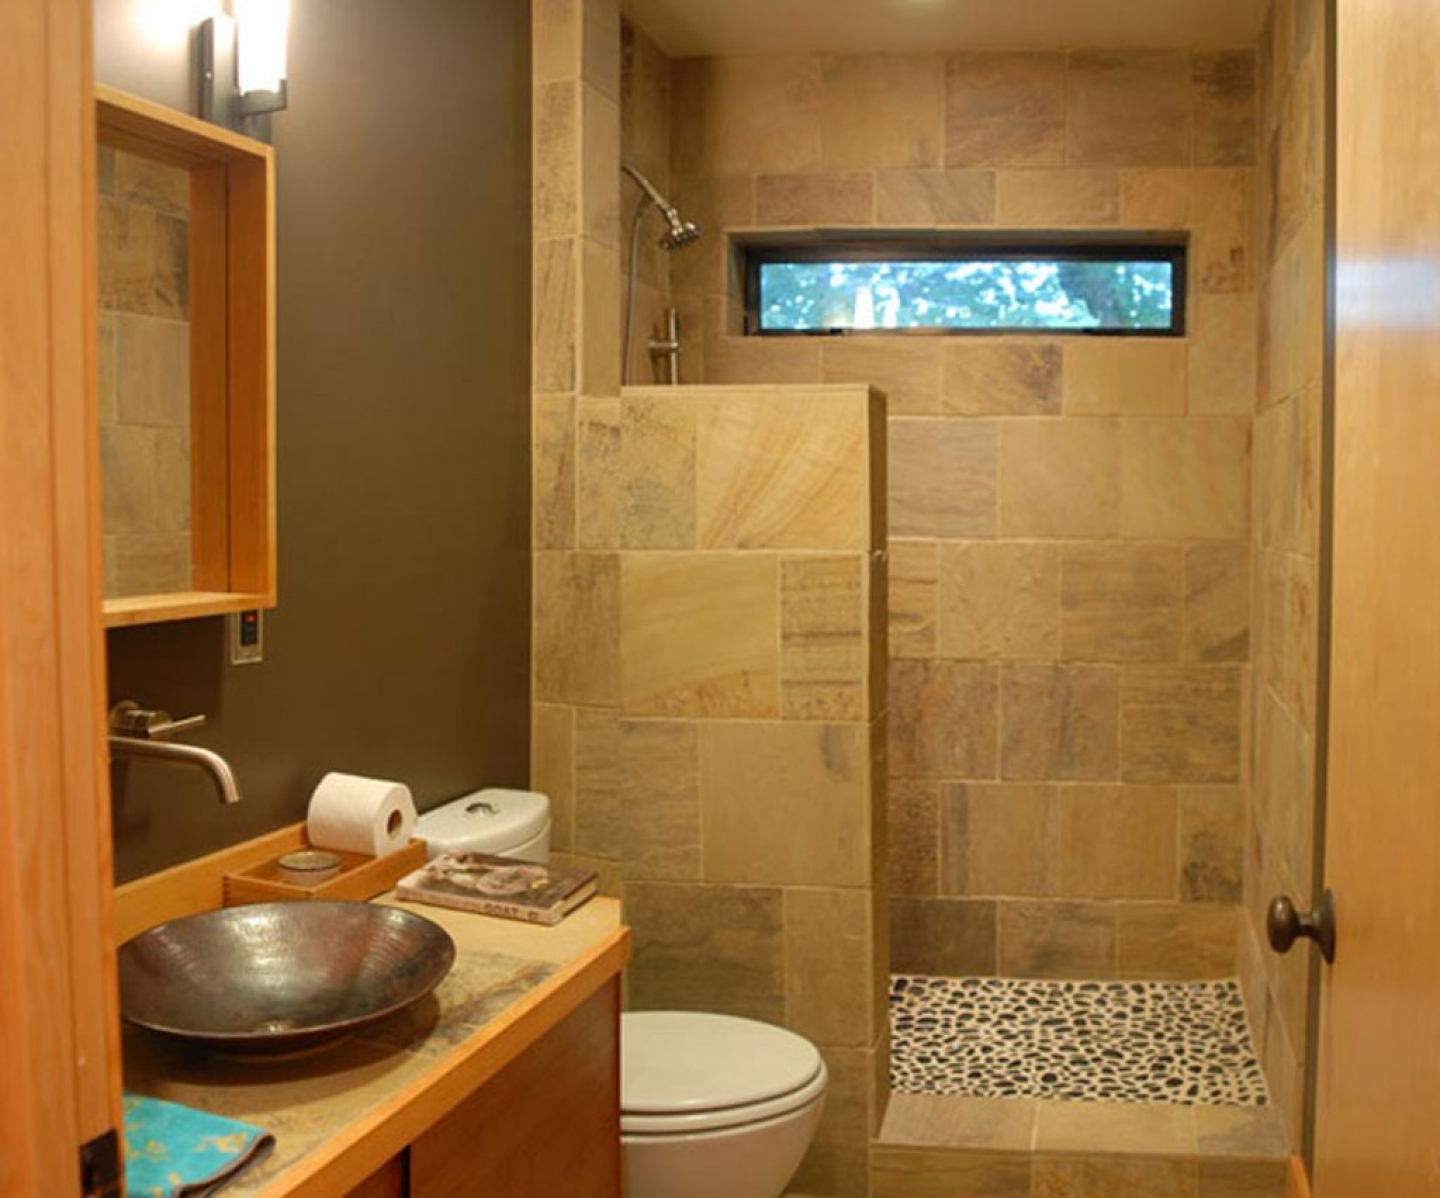 nice-small-bathroom-designs-luxury-bedroom-interior-design-for-small-houses-nice-small-bathroom-ranch-style-home-update-ranch-house-decorating-ideas-ranch-home-interior-design-ideas